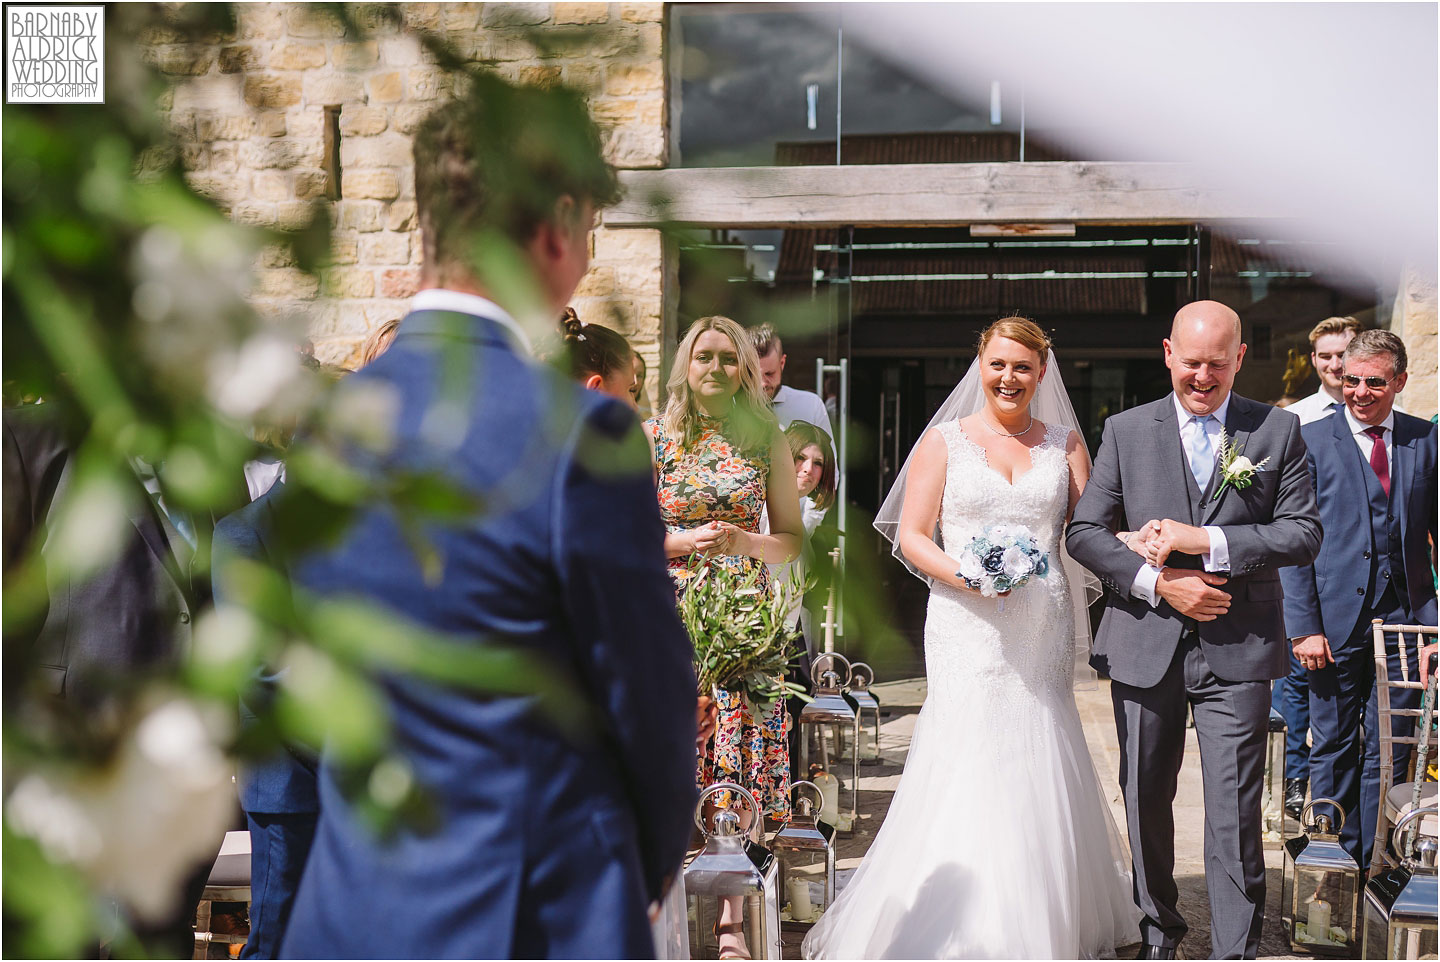 Bridal entrance photos at Priory Cottages, The Priory Wetherby Yorkshire